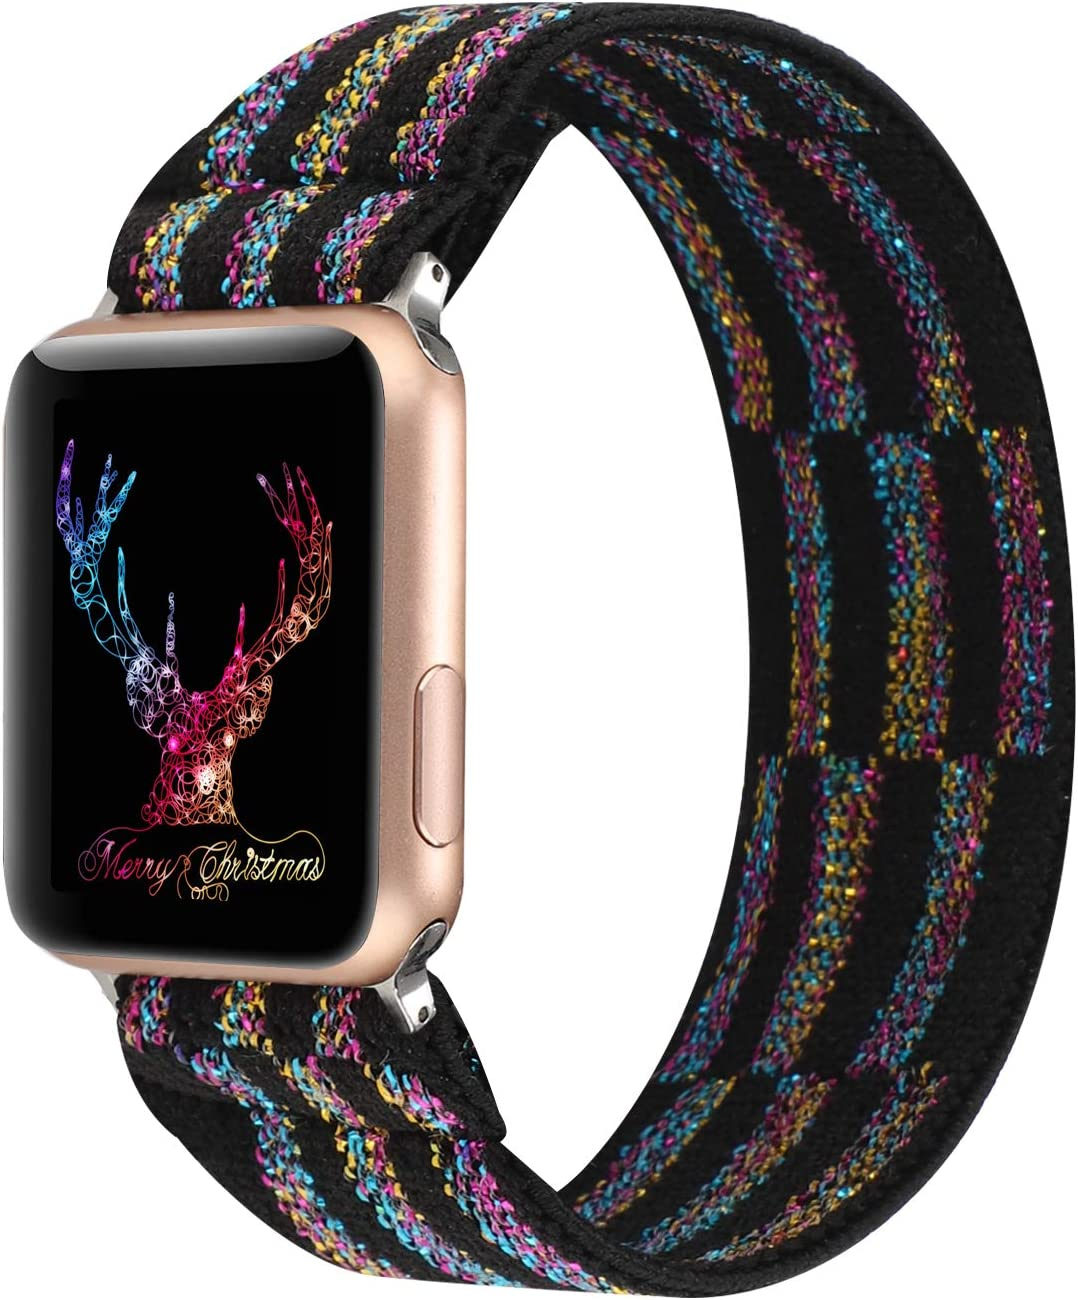 PENKEY Stretchy Band Compatible with Apple Watch Elastic Band 42mm 44mm Cute Pattern Soft Nylon Strap Replacement Wristband for iWatch Series 5/4/3/2/1 (Black Color, 42mm/44mm Large Size)